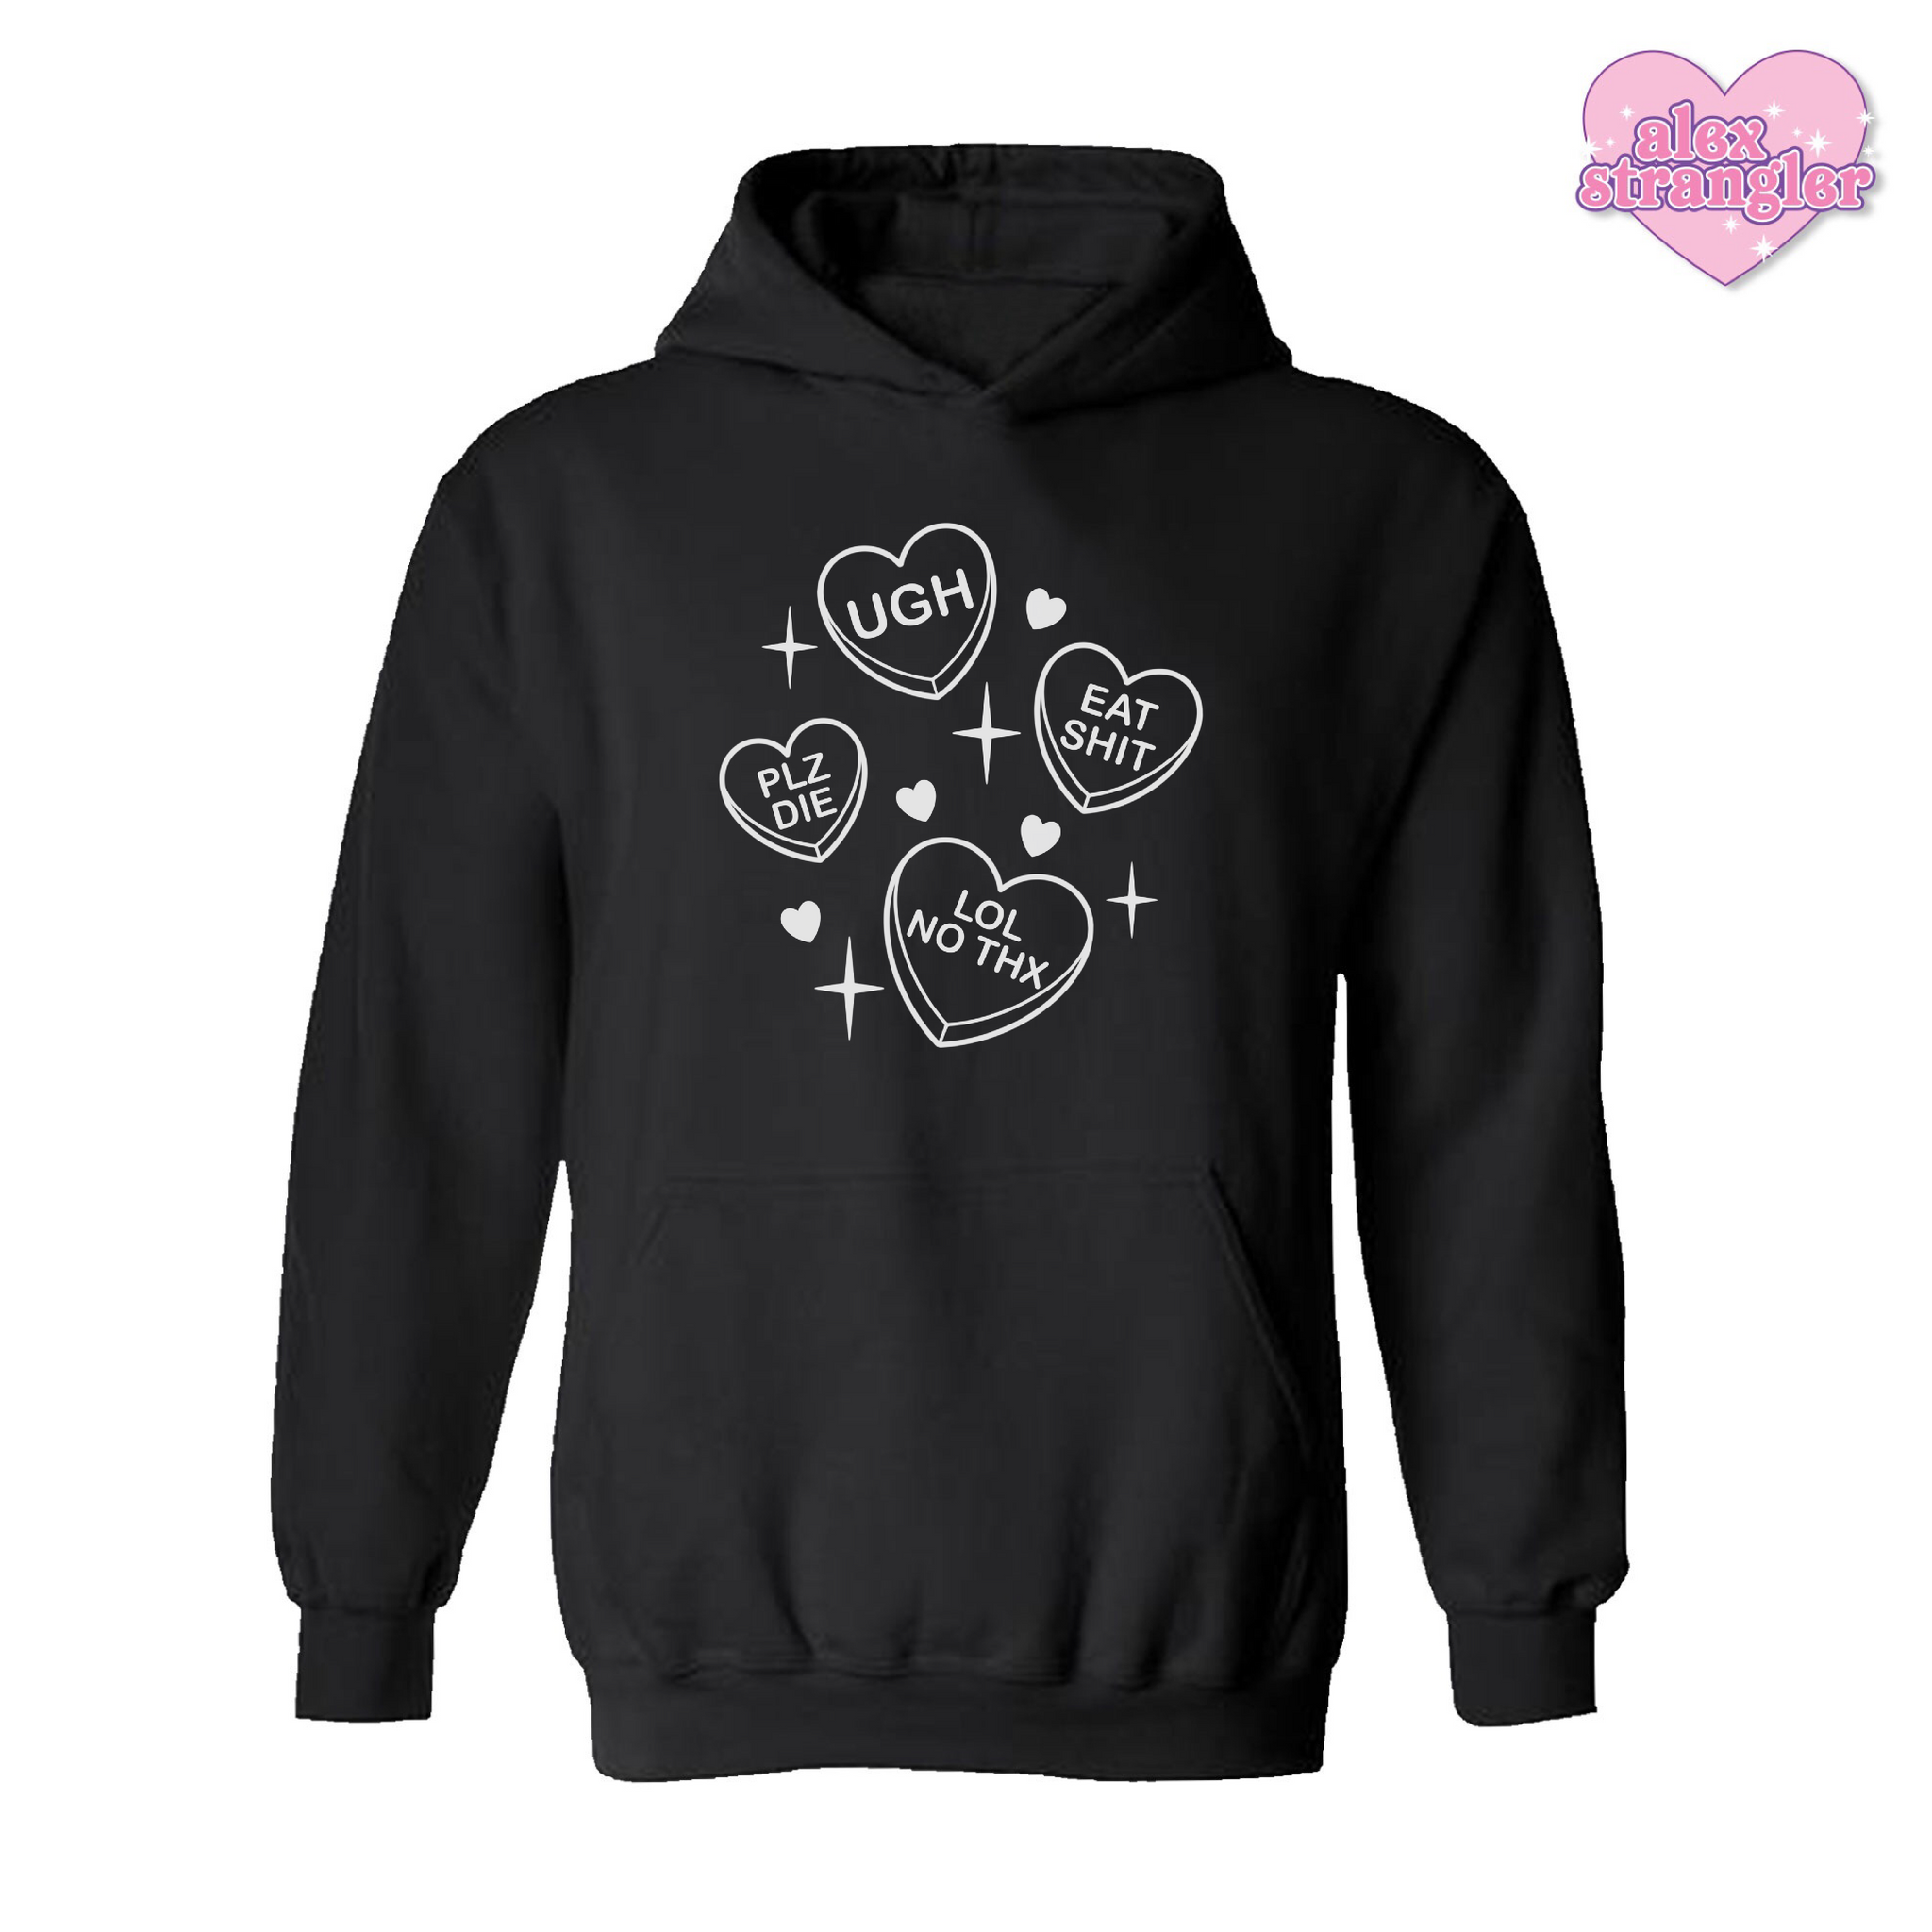 Always Check Your Candy - Men's/Unisex Hoodie